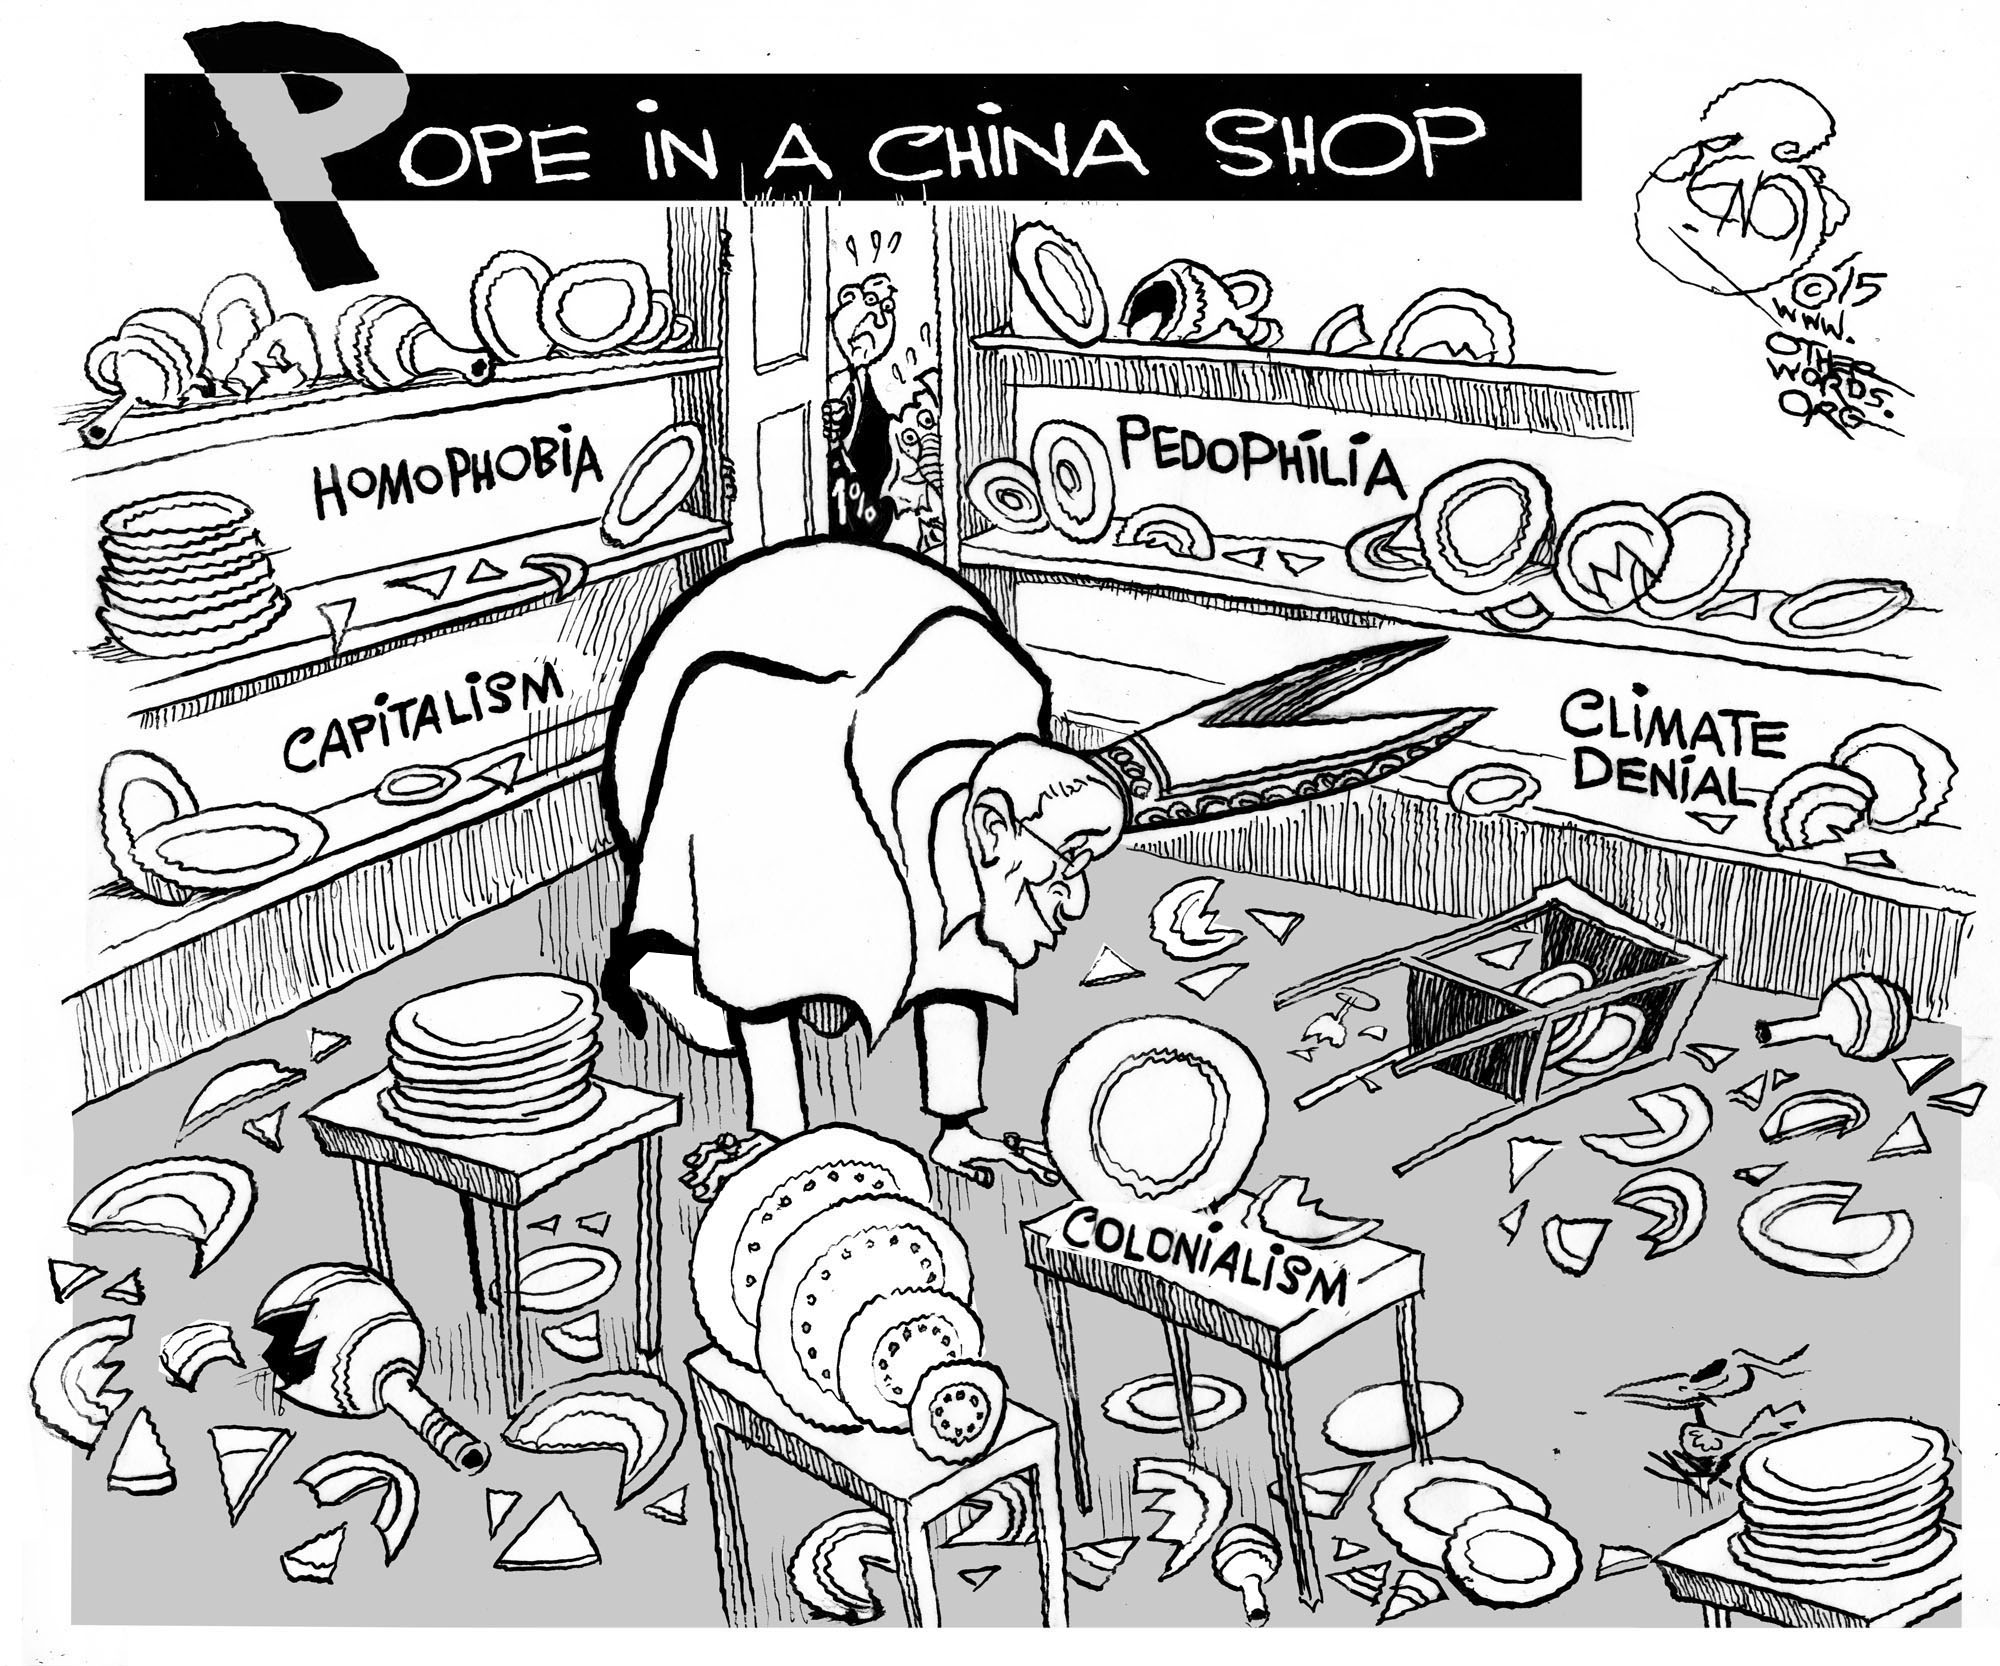 Pope in a China Shop